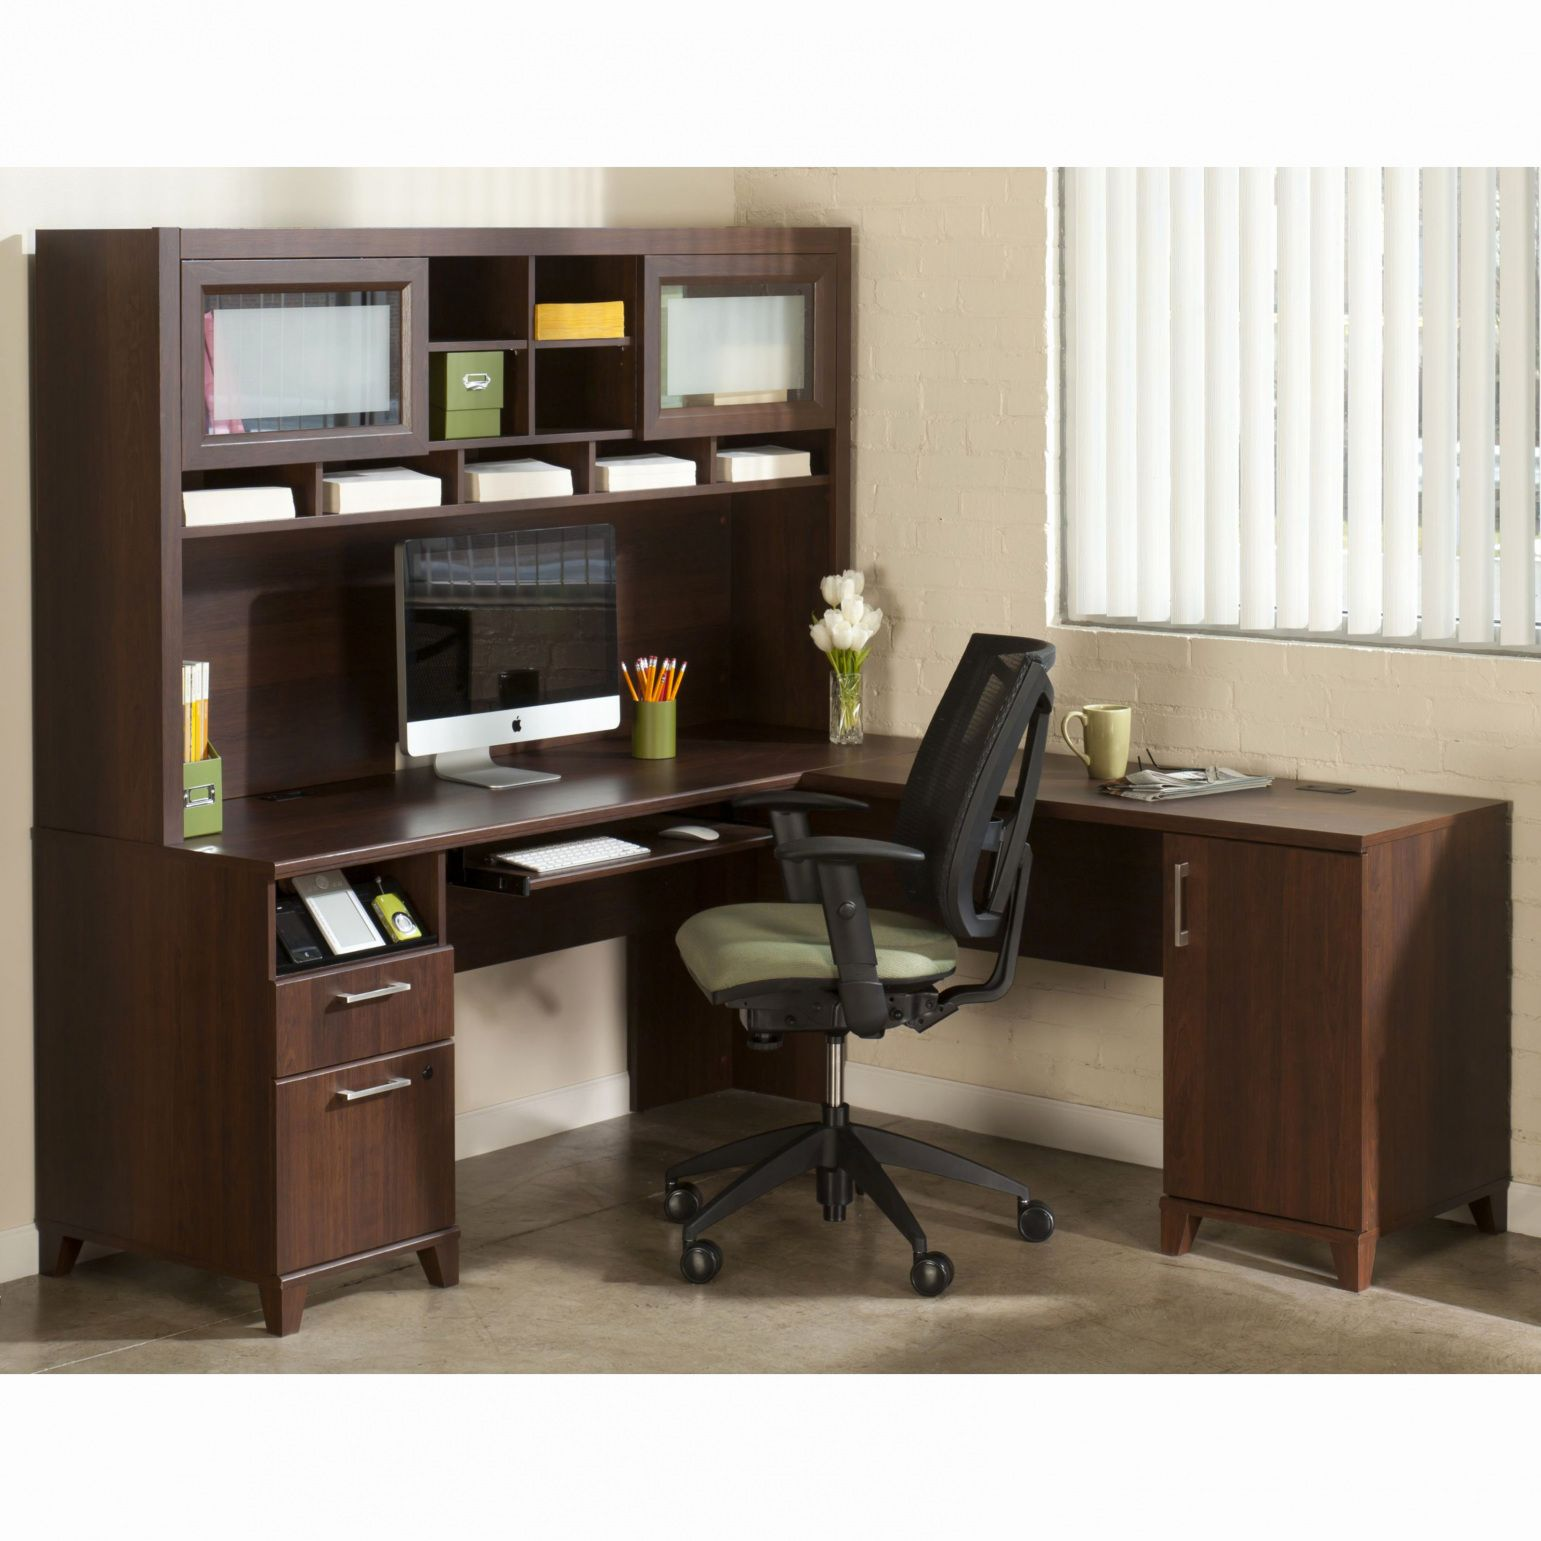 55+ Baraga White Home Office L Desk with Frosted Glass top